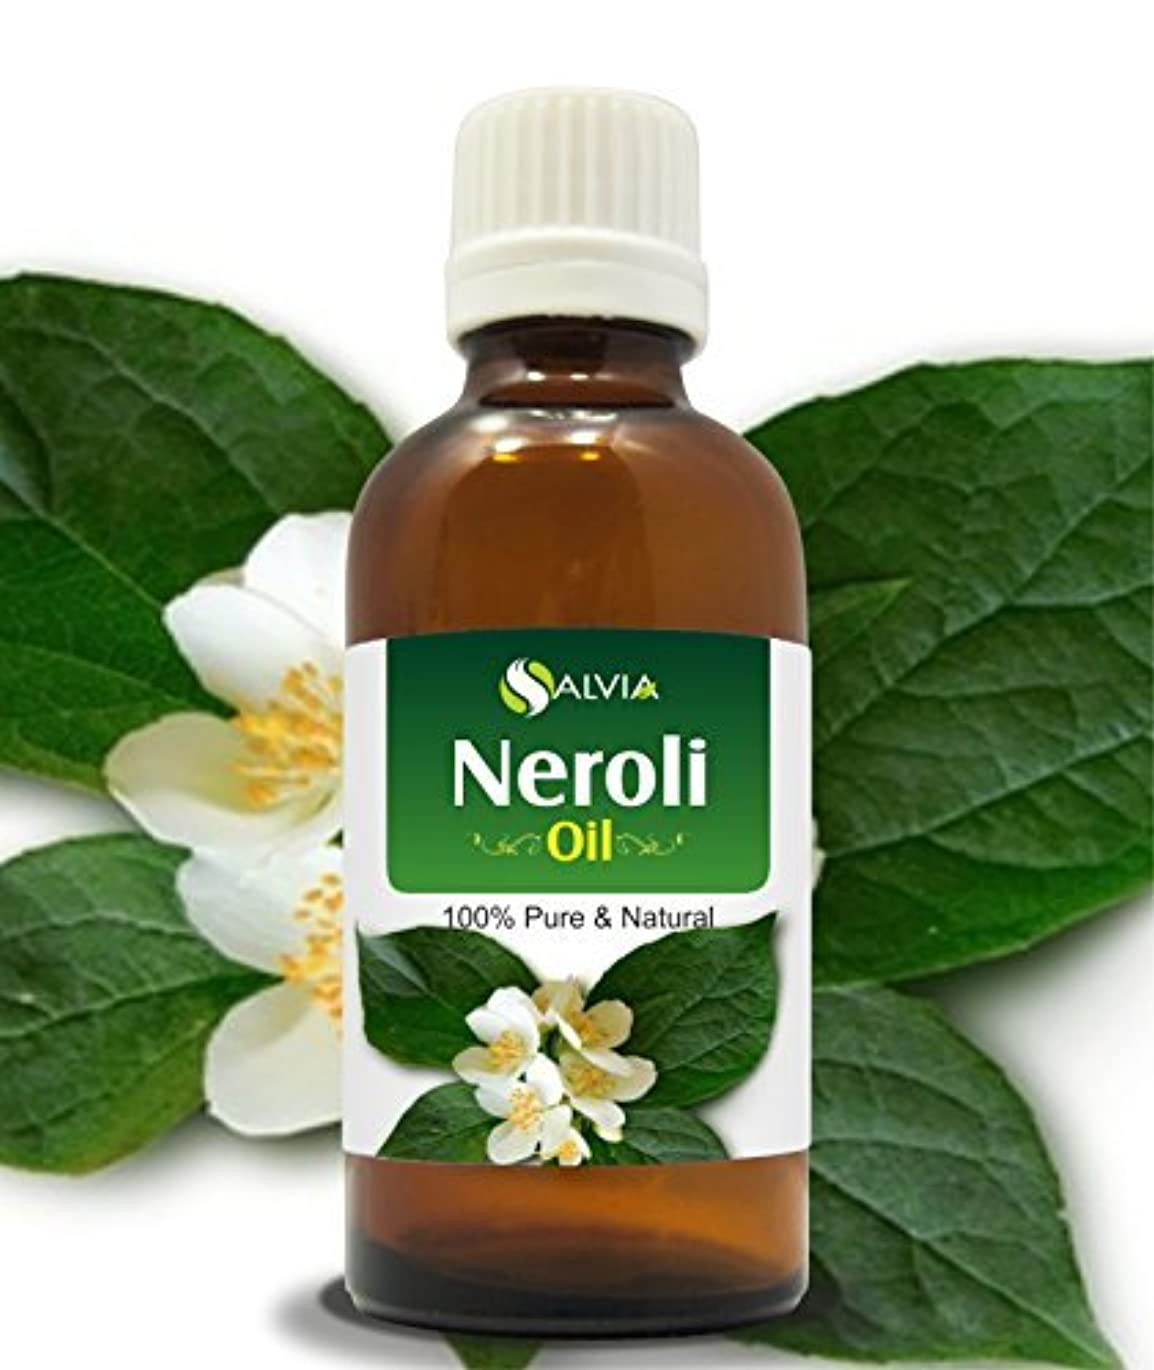 測定可能パトロール流体NEROLI OIL 100% NATURAL PURE UNDILUTED UNCUT ESSENTIAL OILS 30ML by Salvia